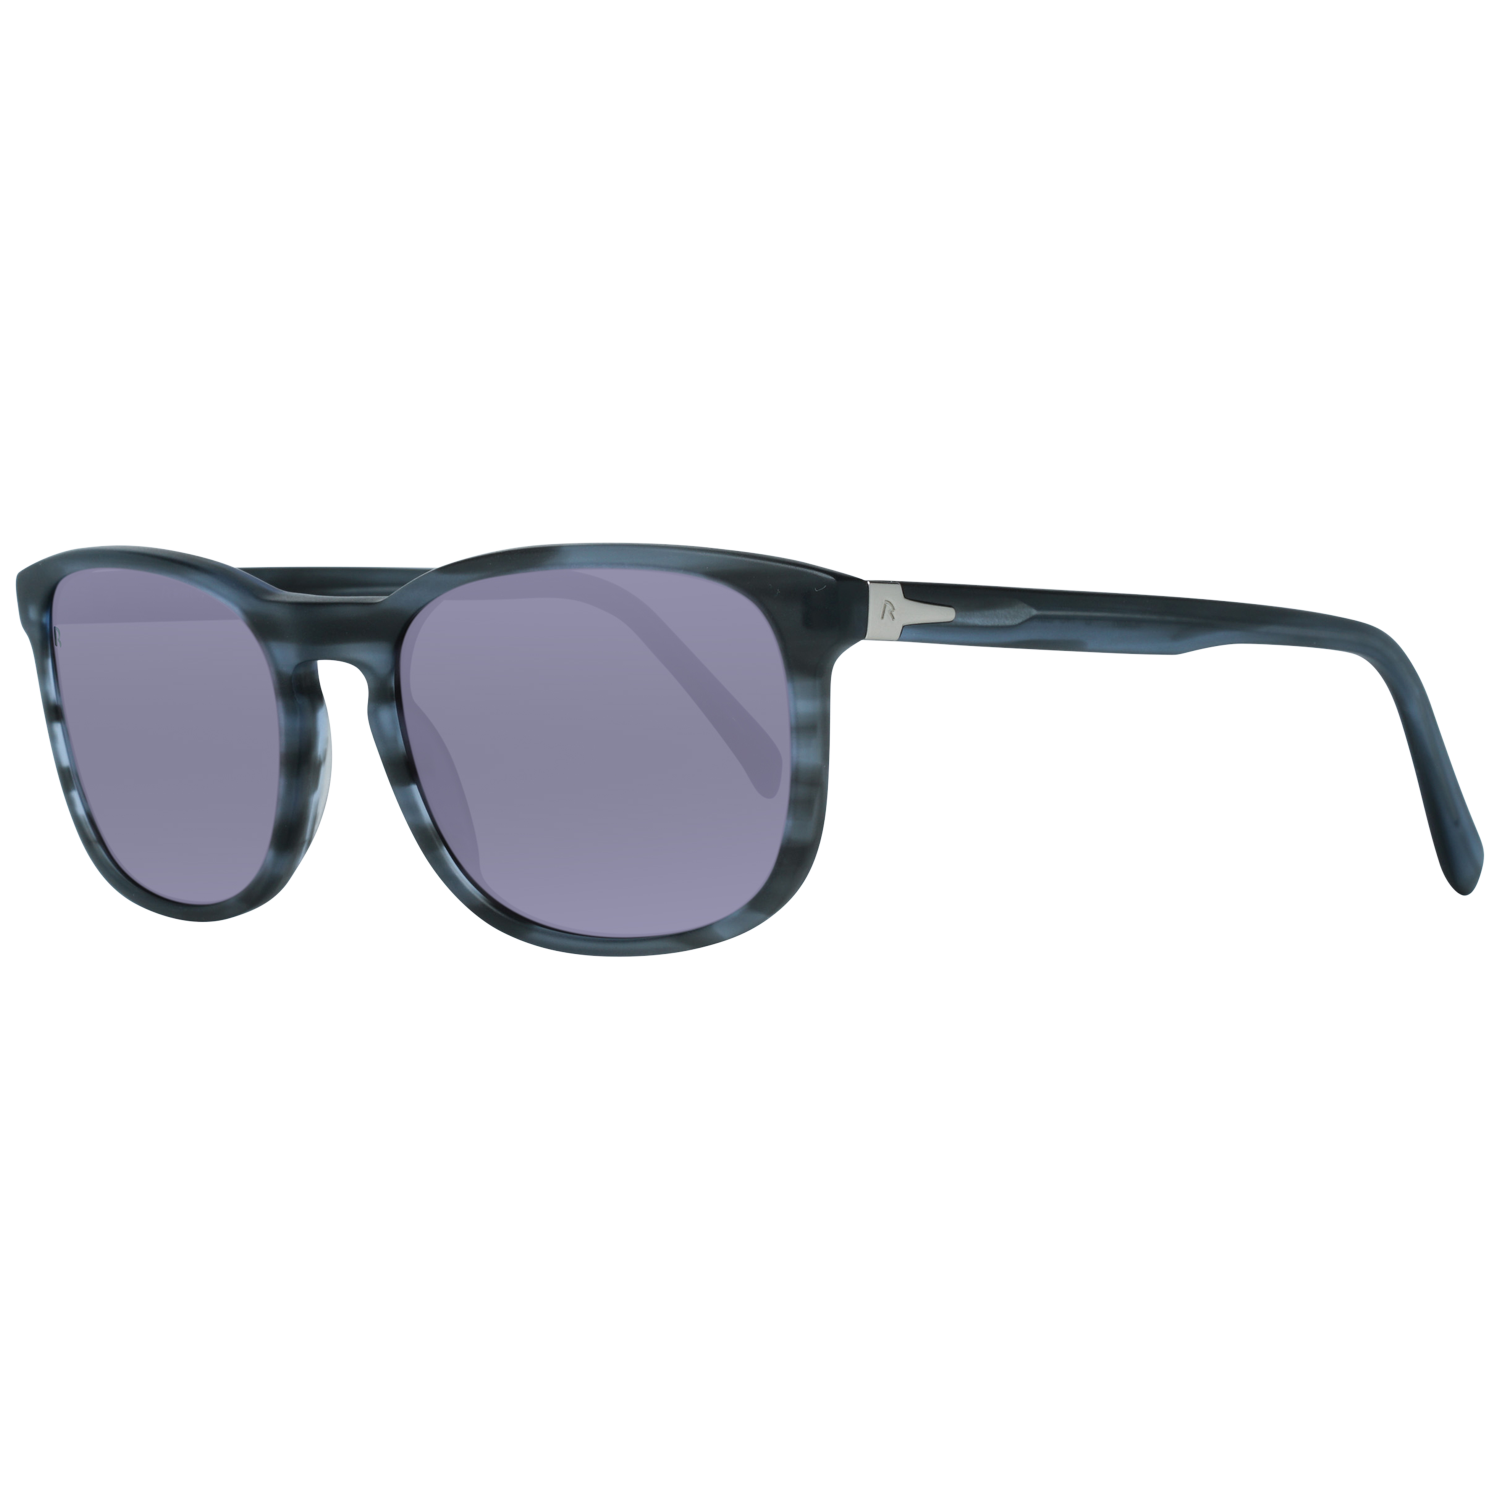 Rodenstock Sunglasses R3287 B 53 Grey